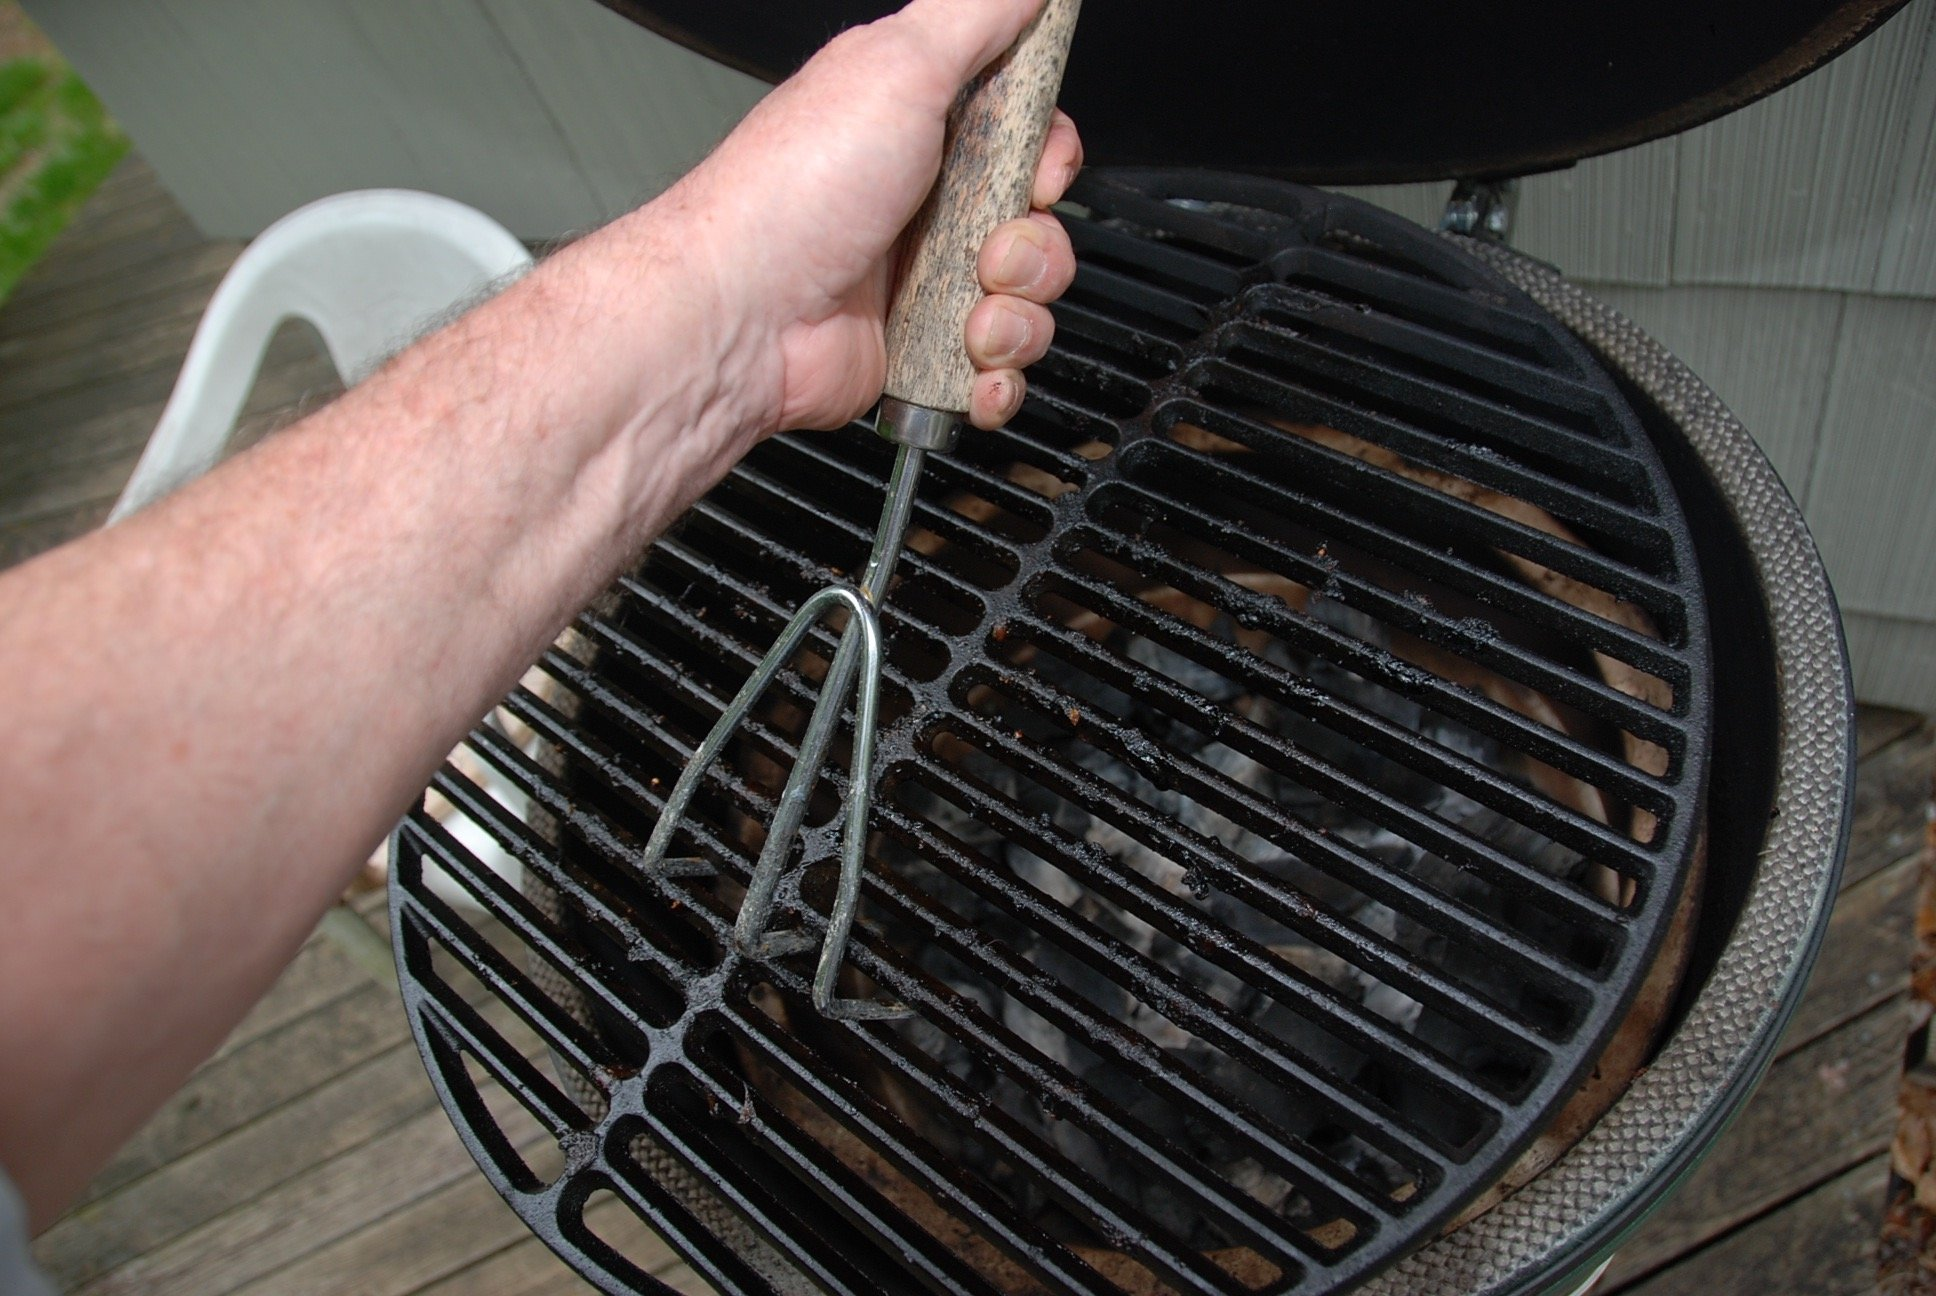 Can't remove rust from cast iron grid — Big Green Egg - EGGhead